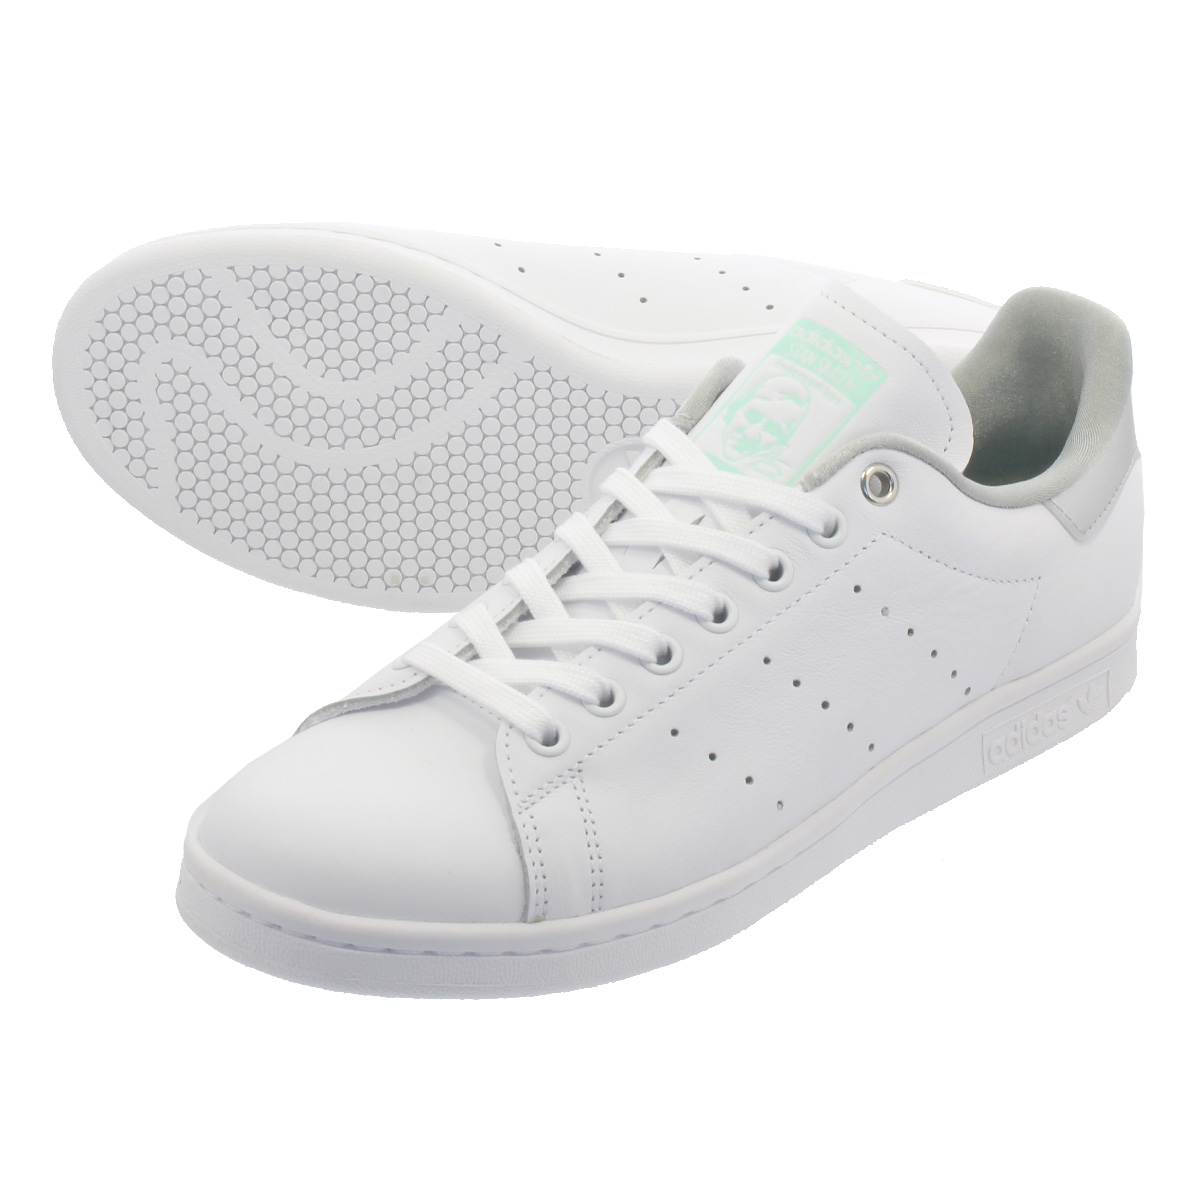 info for 8ba1c 11b28 adidas STAN SMITH W Adidas Stan Smith W RUNNING WHITE/SILVER MET/CLEAR MINT  g27907